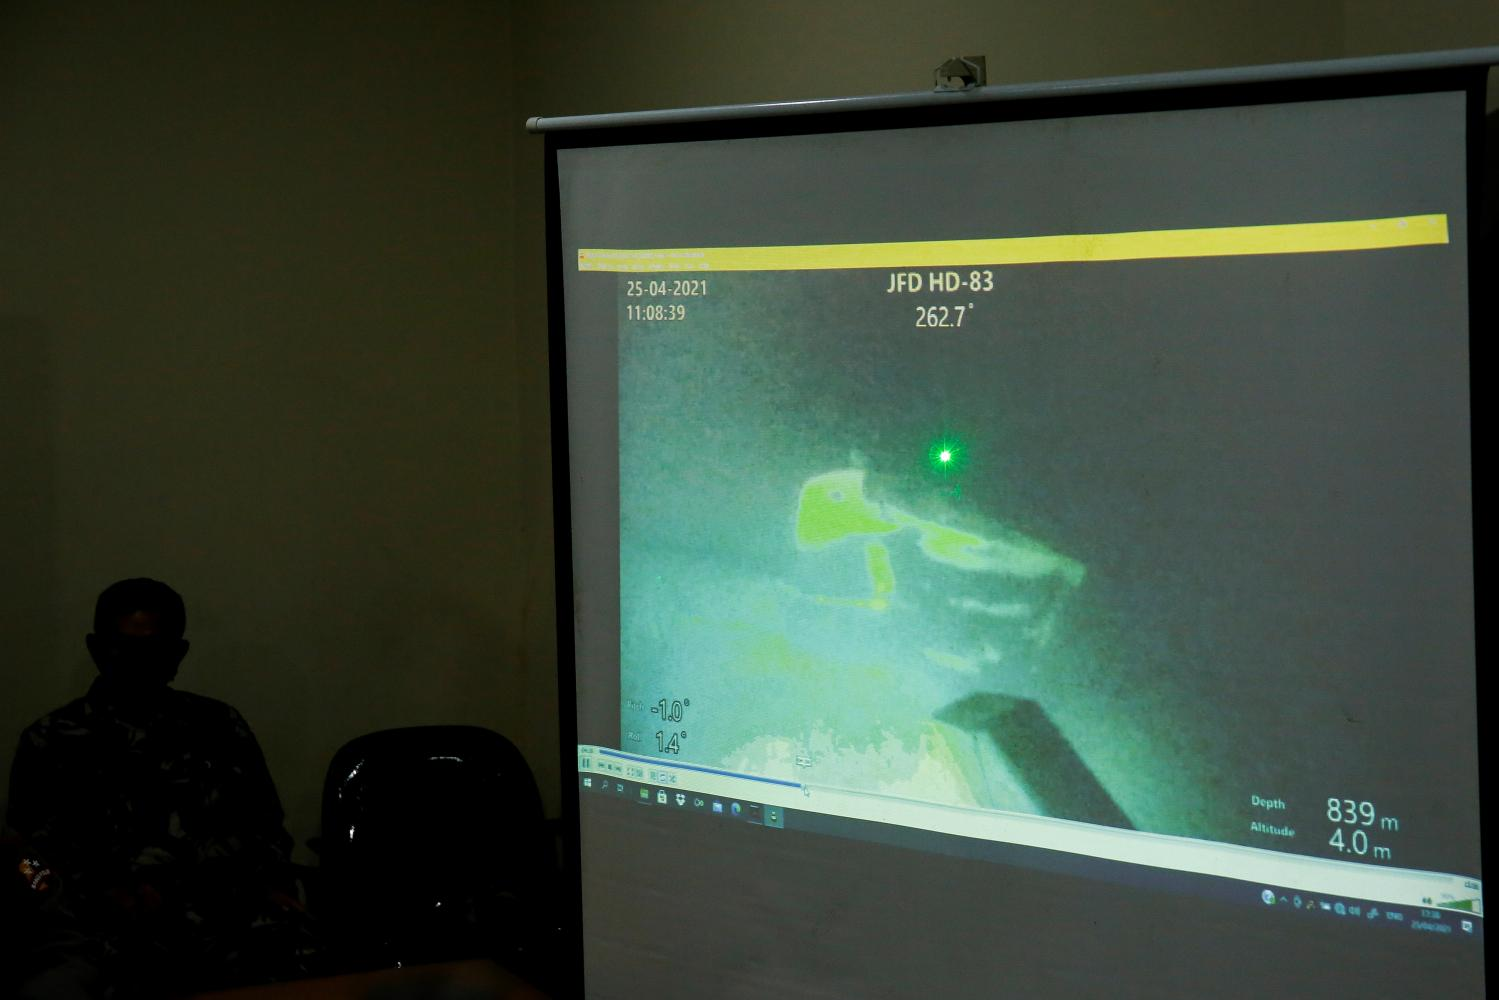 An Indonesian military personnel displays a clip showing the wreckage of the sunken Indonesian Navy KRI Nanggala-402 submarine on April 25.REUTERS